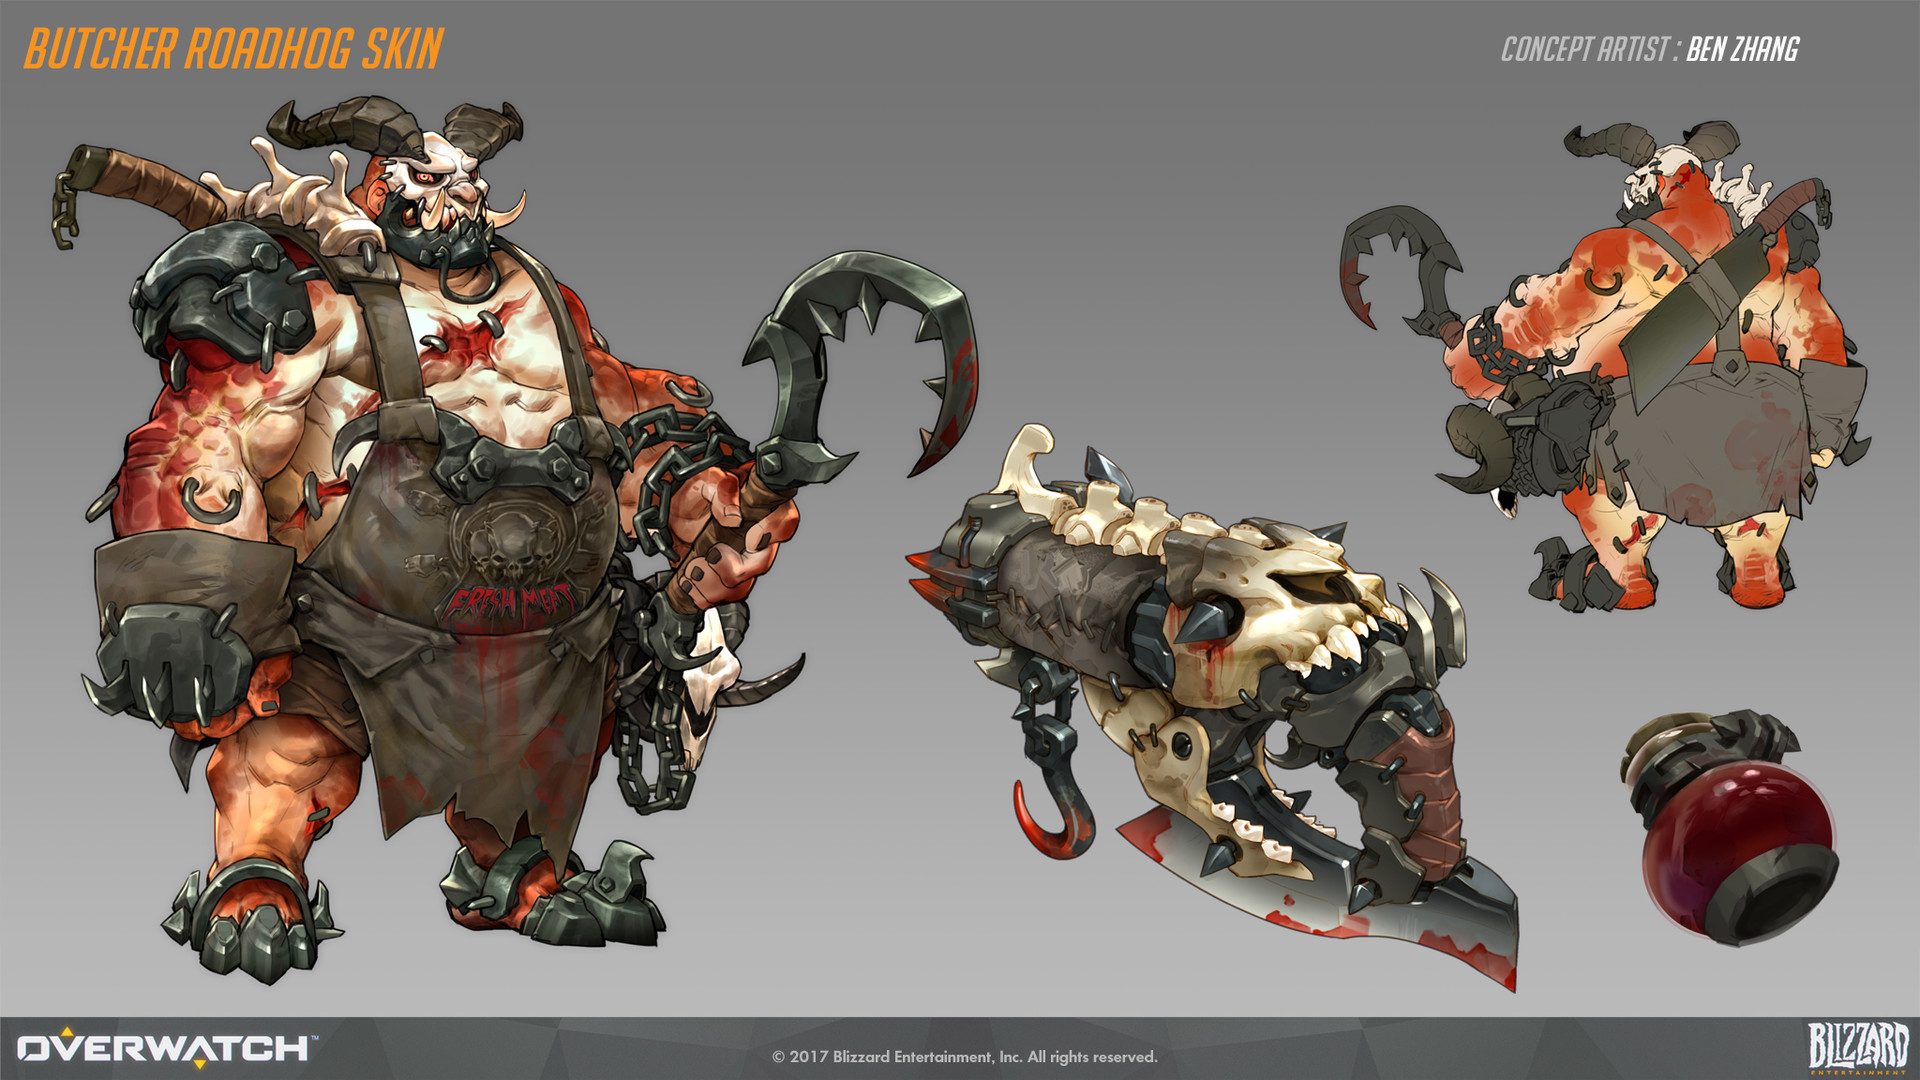 Ben zhang butcher roadhog